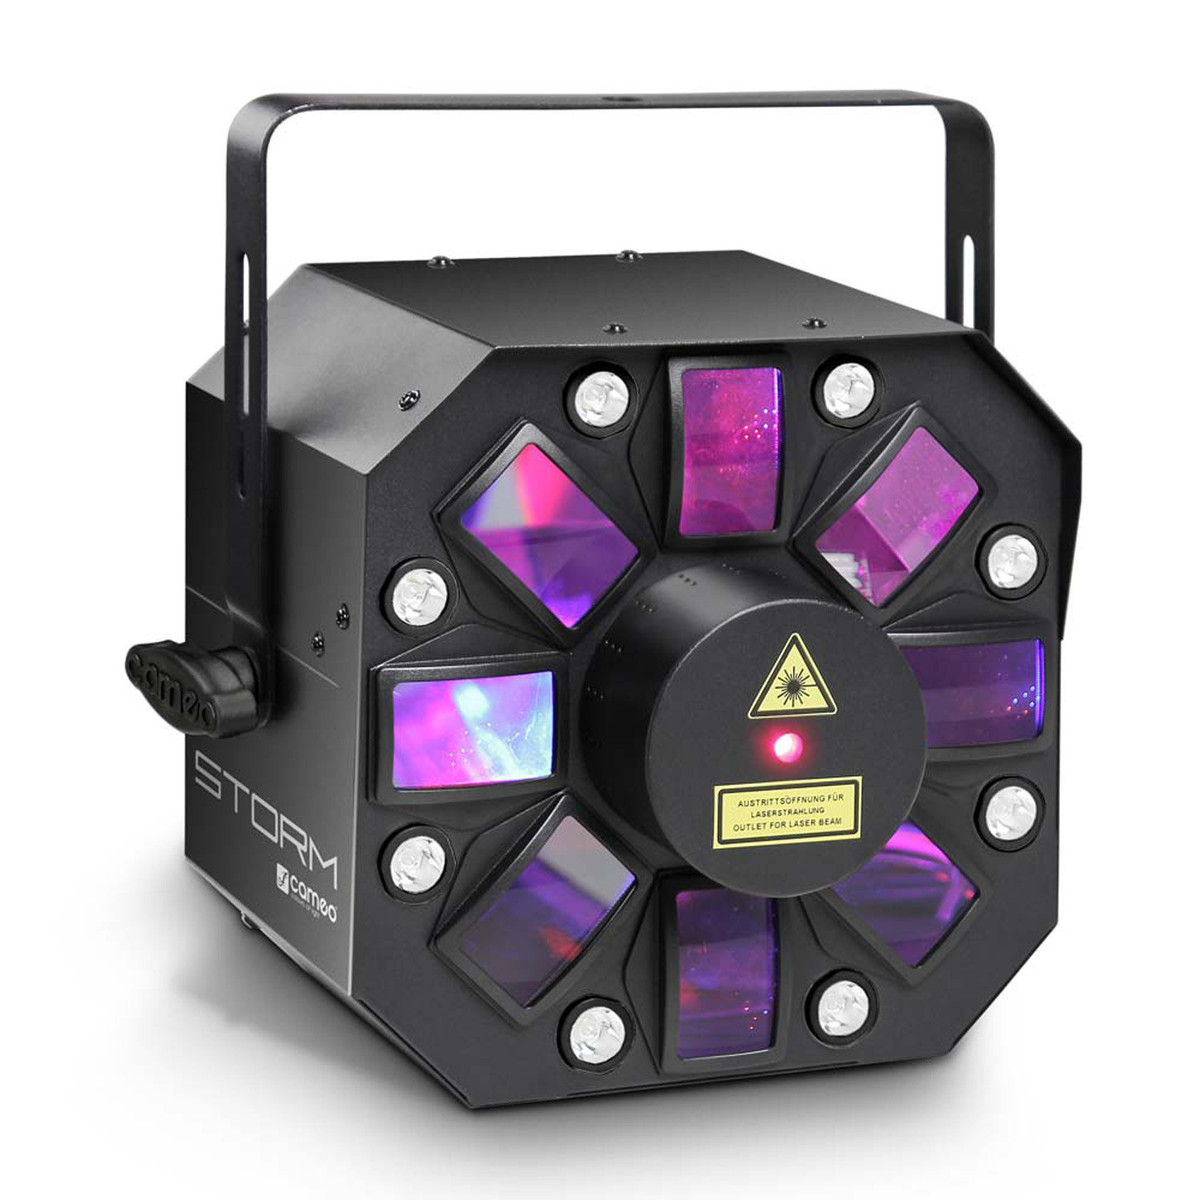 Image of Cameo 5 x 3W RGBAW Derby Strobe and Grating Laser Lighting Effect